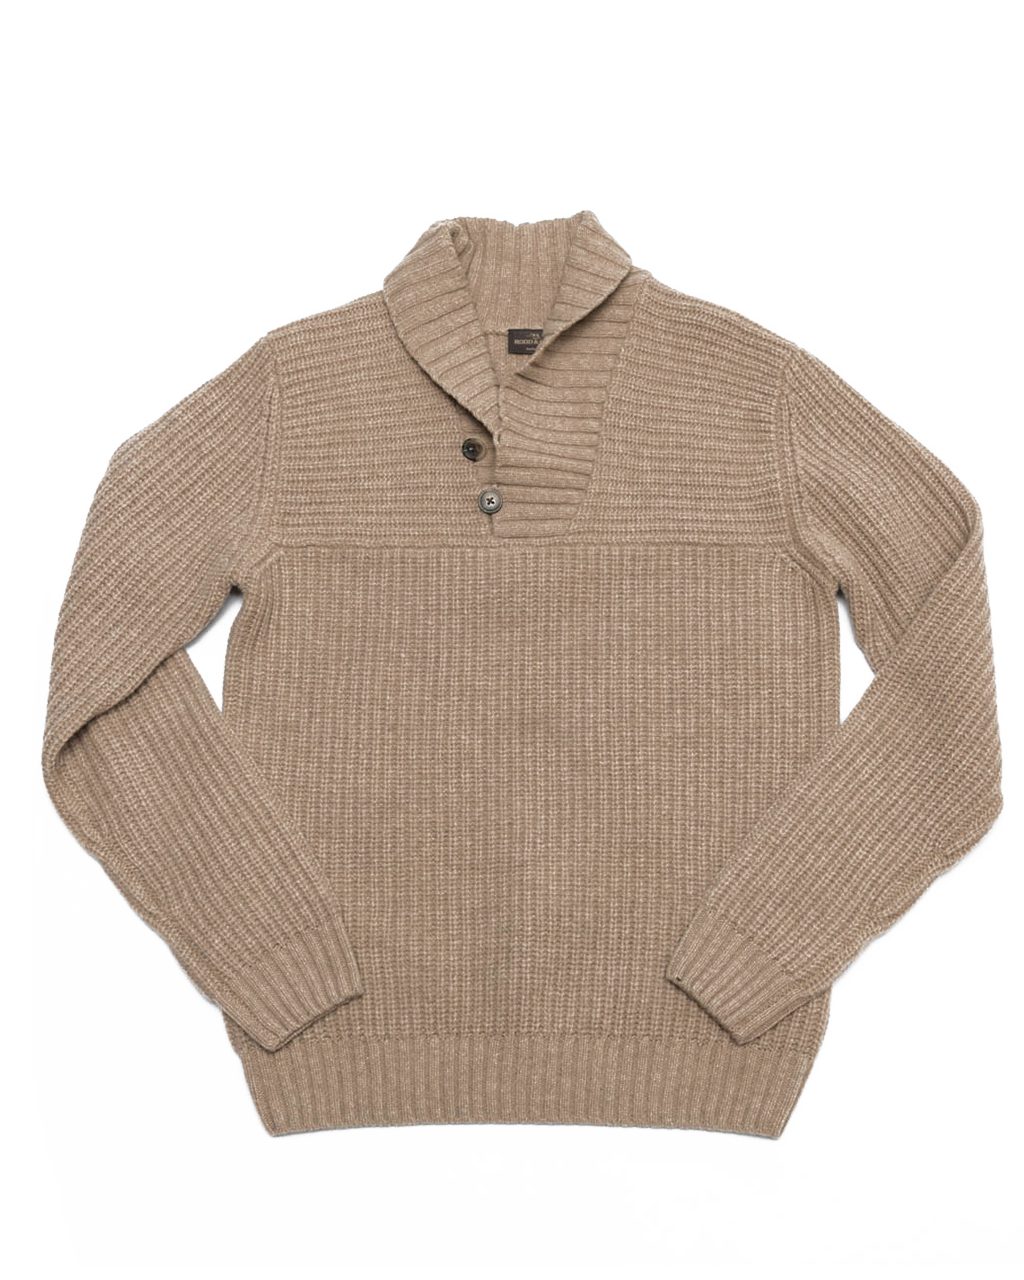 Spurling Knit Sweatshirt